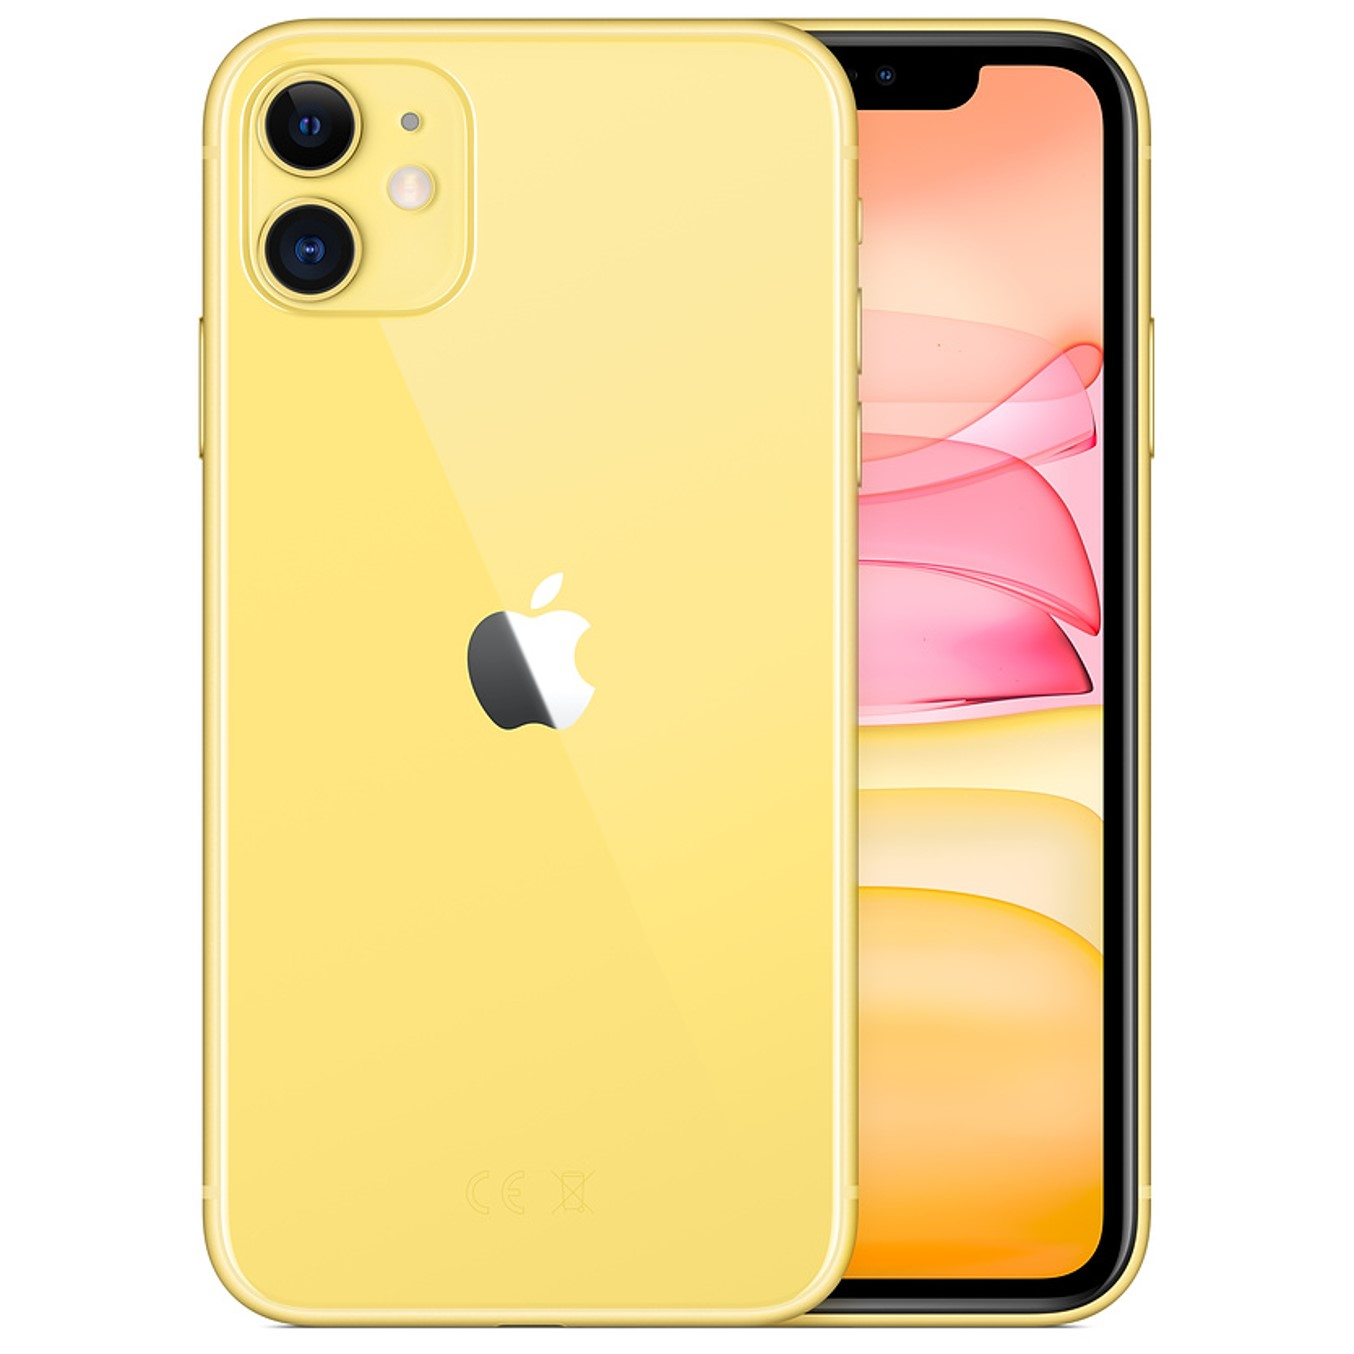 Telefono movil smartphone apple iphone 11 64gb amarillo - 6.1pulgadas - dual sim